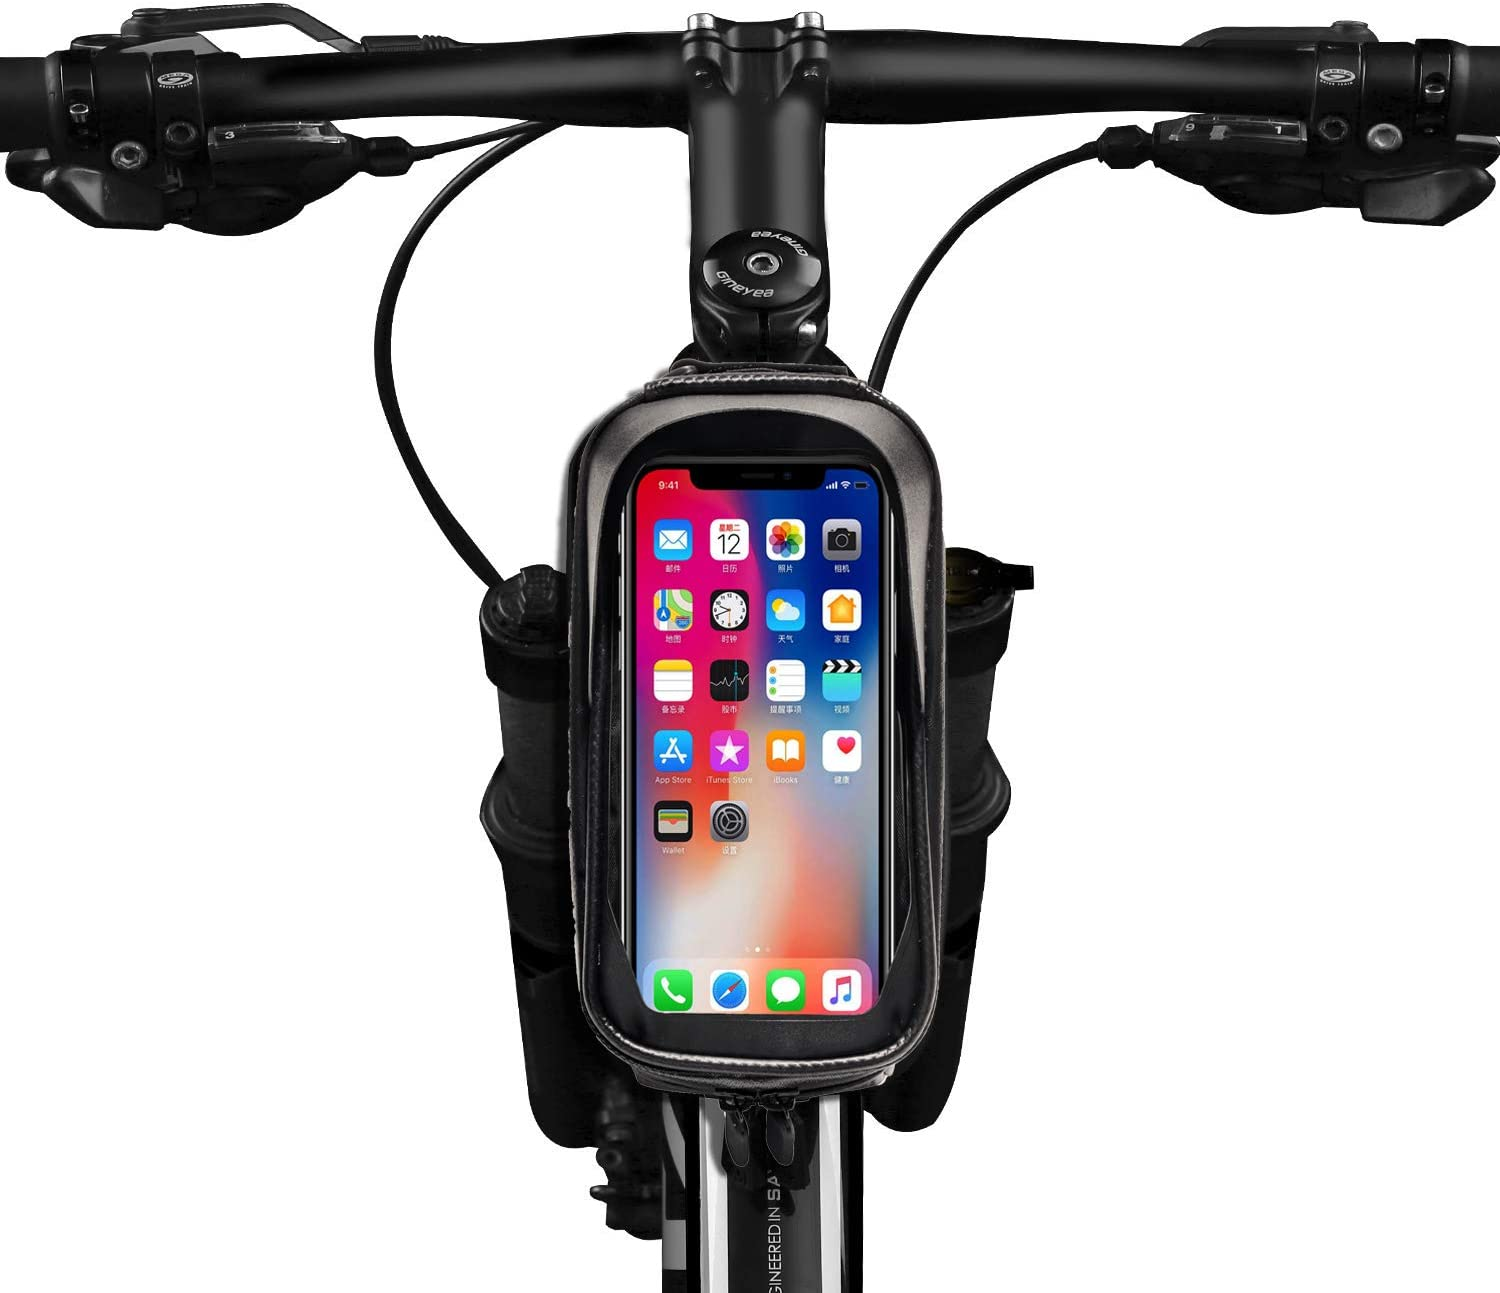 Potok Bicycle Phone Mount Bag Waterproof Front Frame Bike Bags Sensitive Touch Screen Large Capacity Sun Visor Top Tube Bike Bag Compatible with iPhone Xs Max// 8Plus Galaxy Note 9